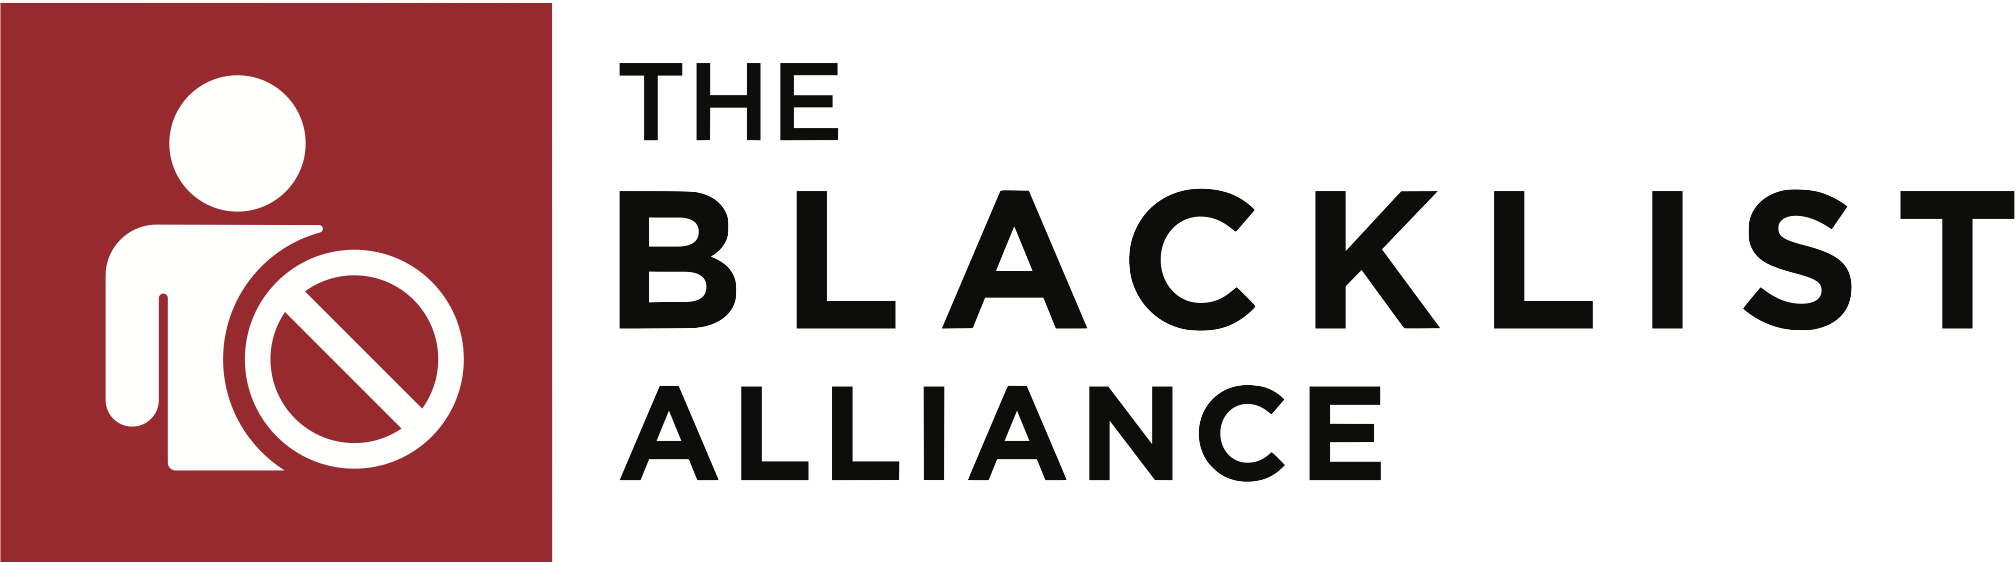 The Blacklist Alliance